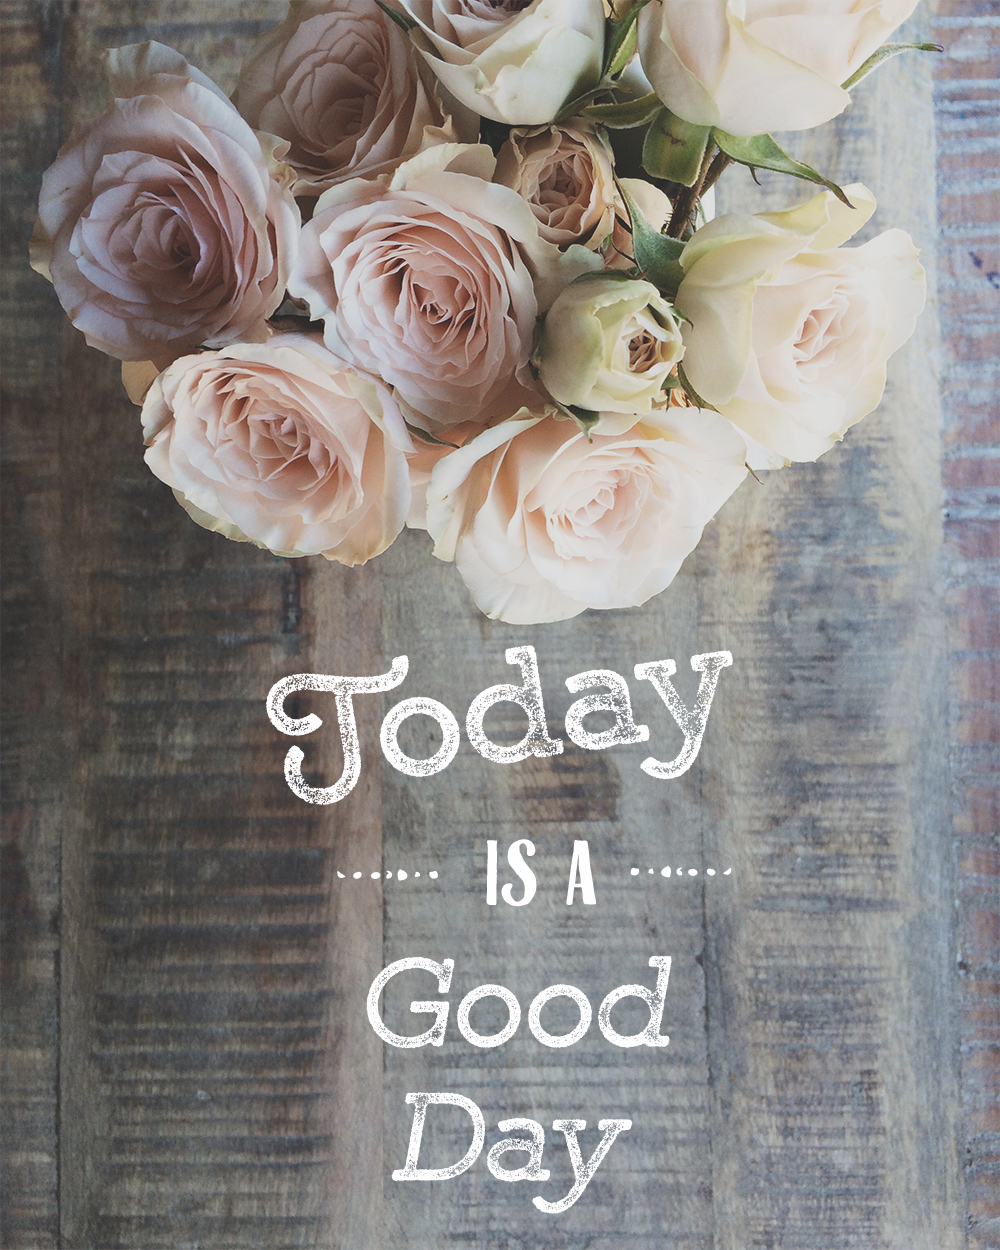 Today is a Good Day - Free Printable by Azzari Jarrett